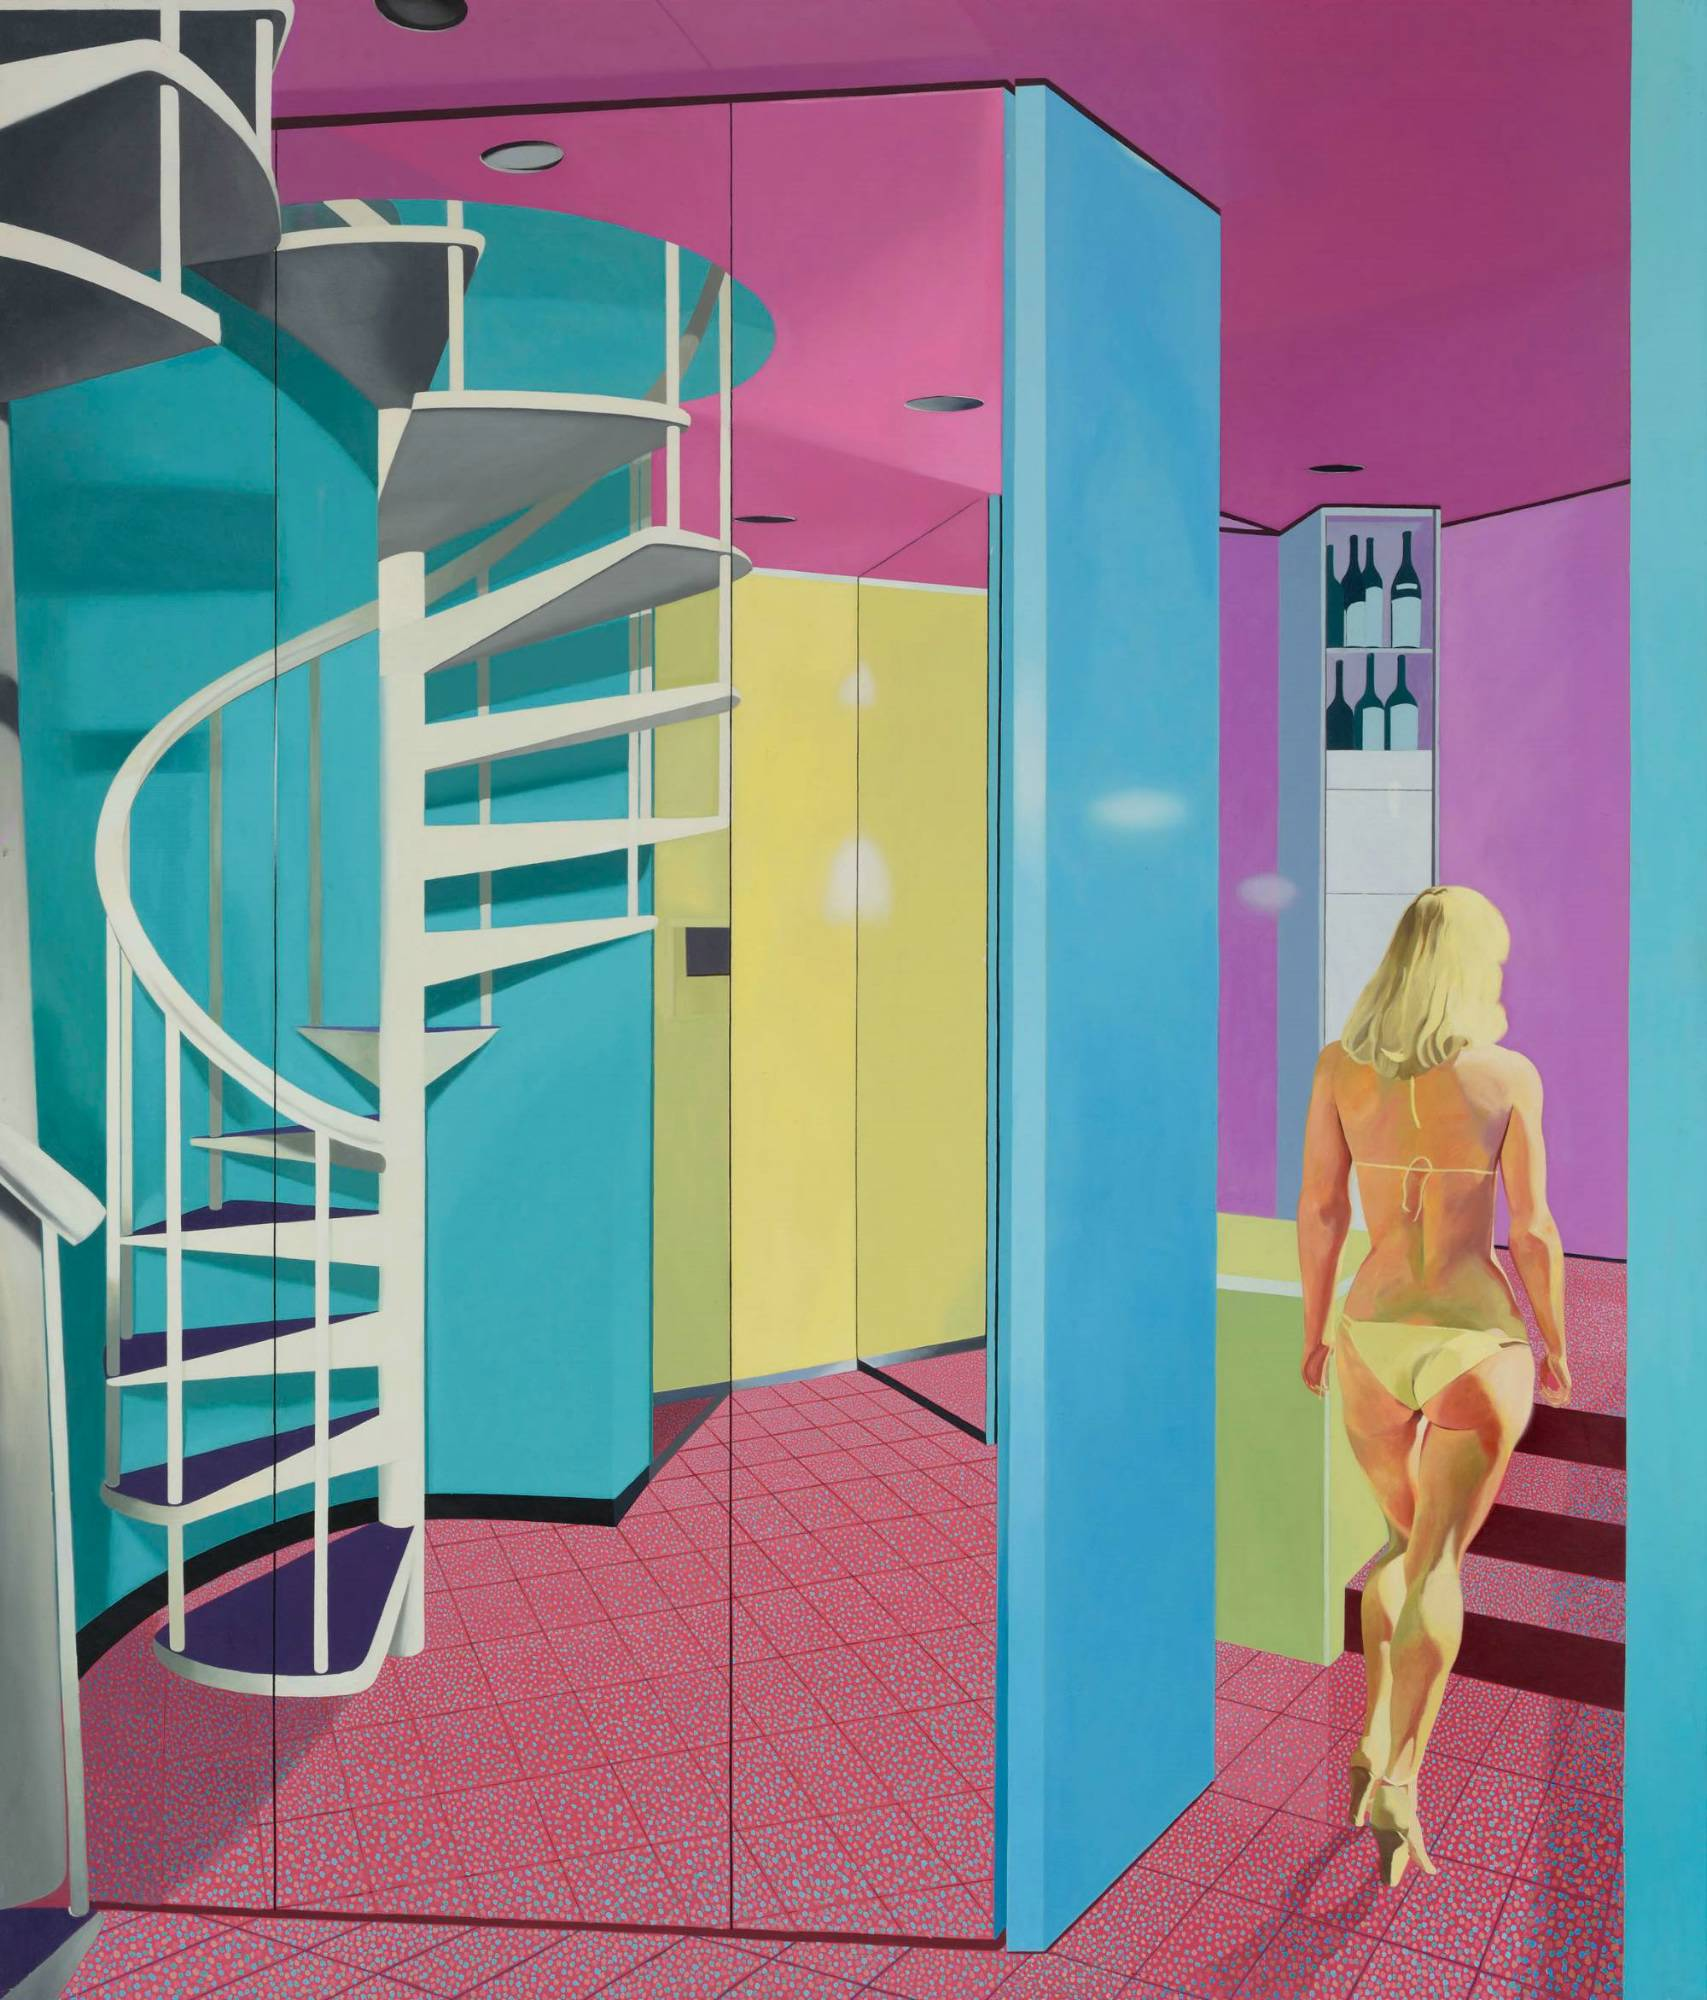 Mirrored Optical Staircase and Nude Woman 1983